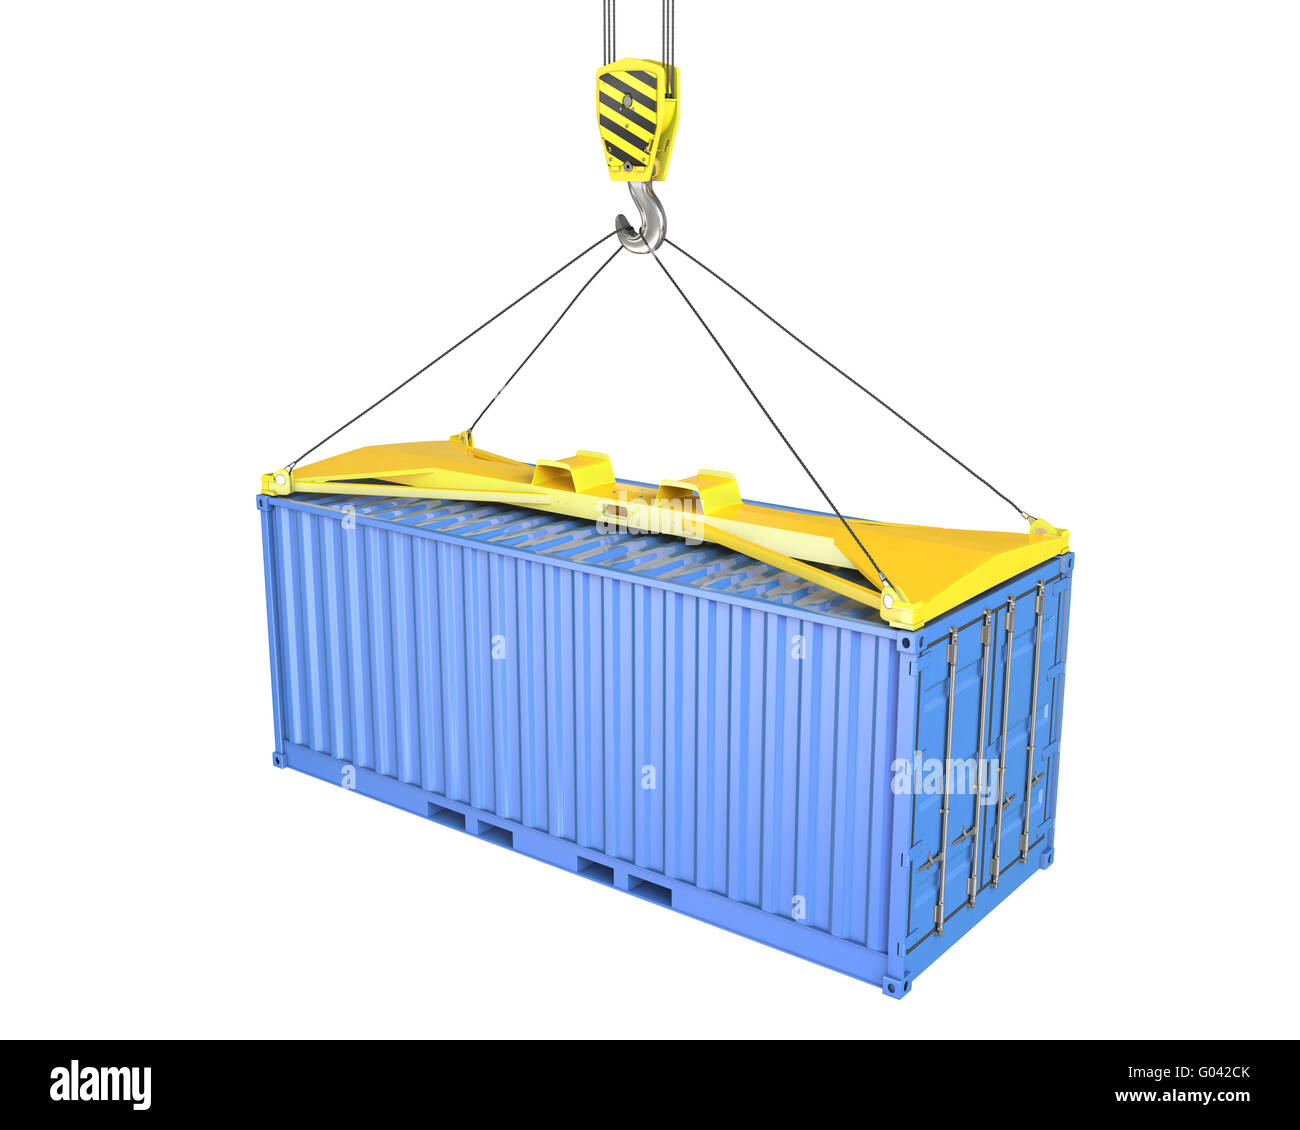 Freight container hoisted on container spreader - Stock Image